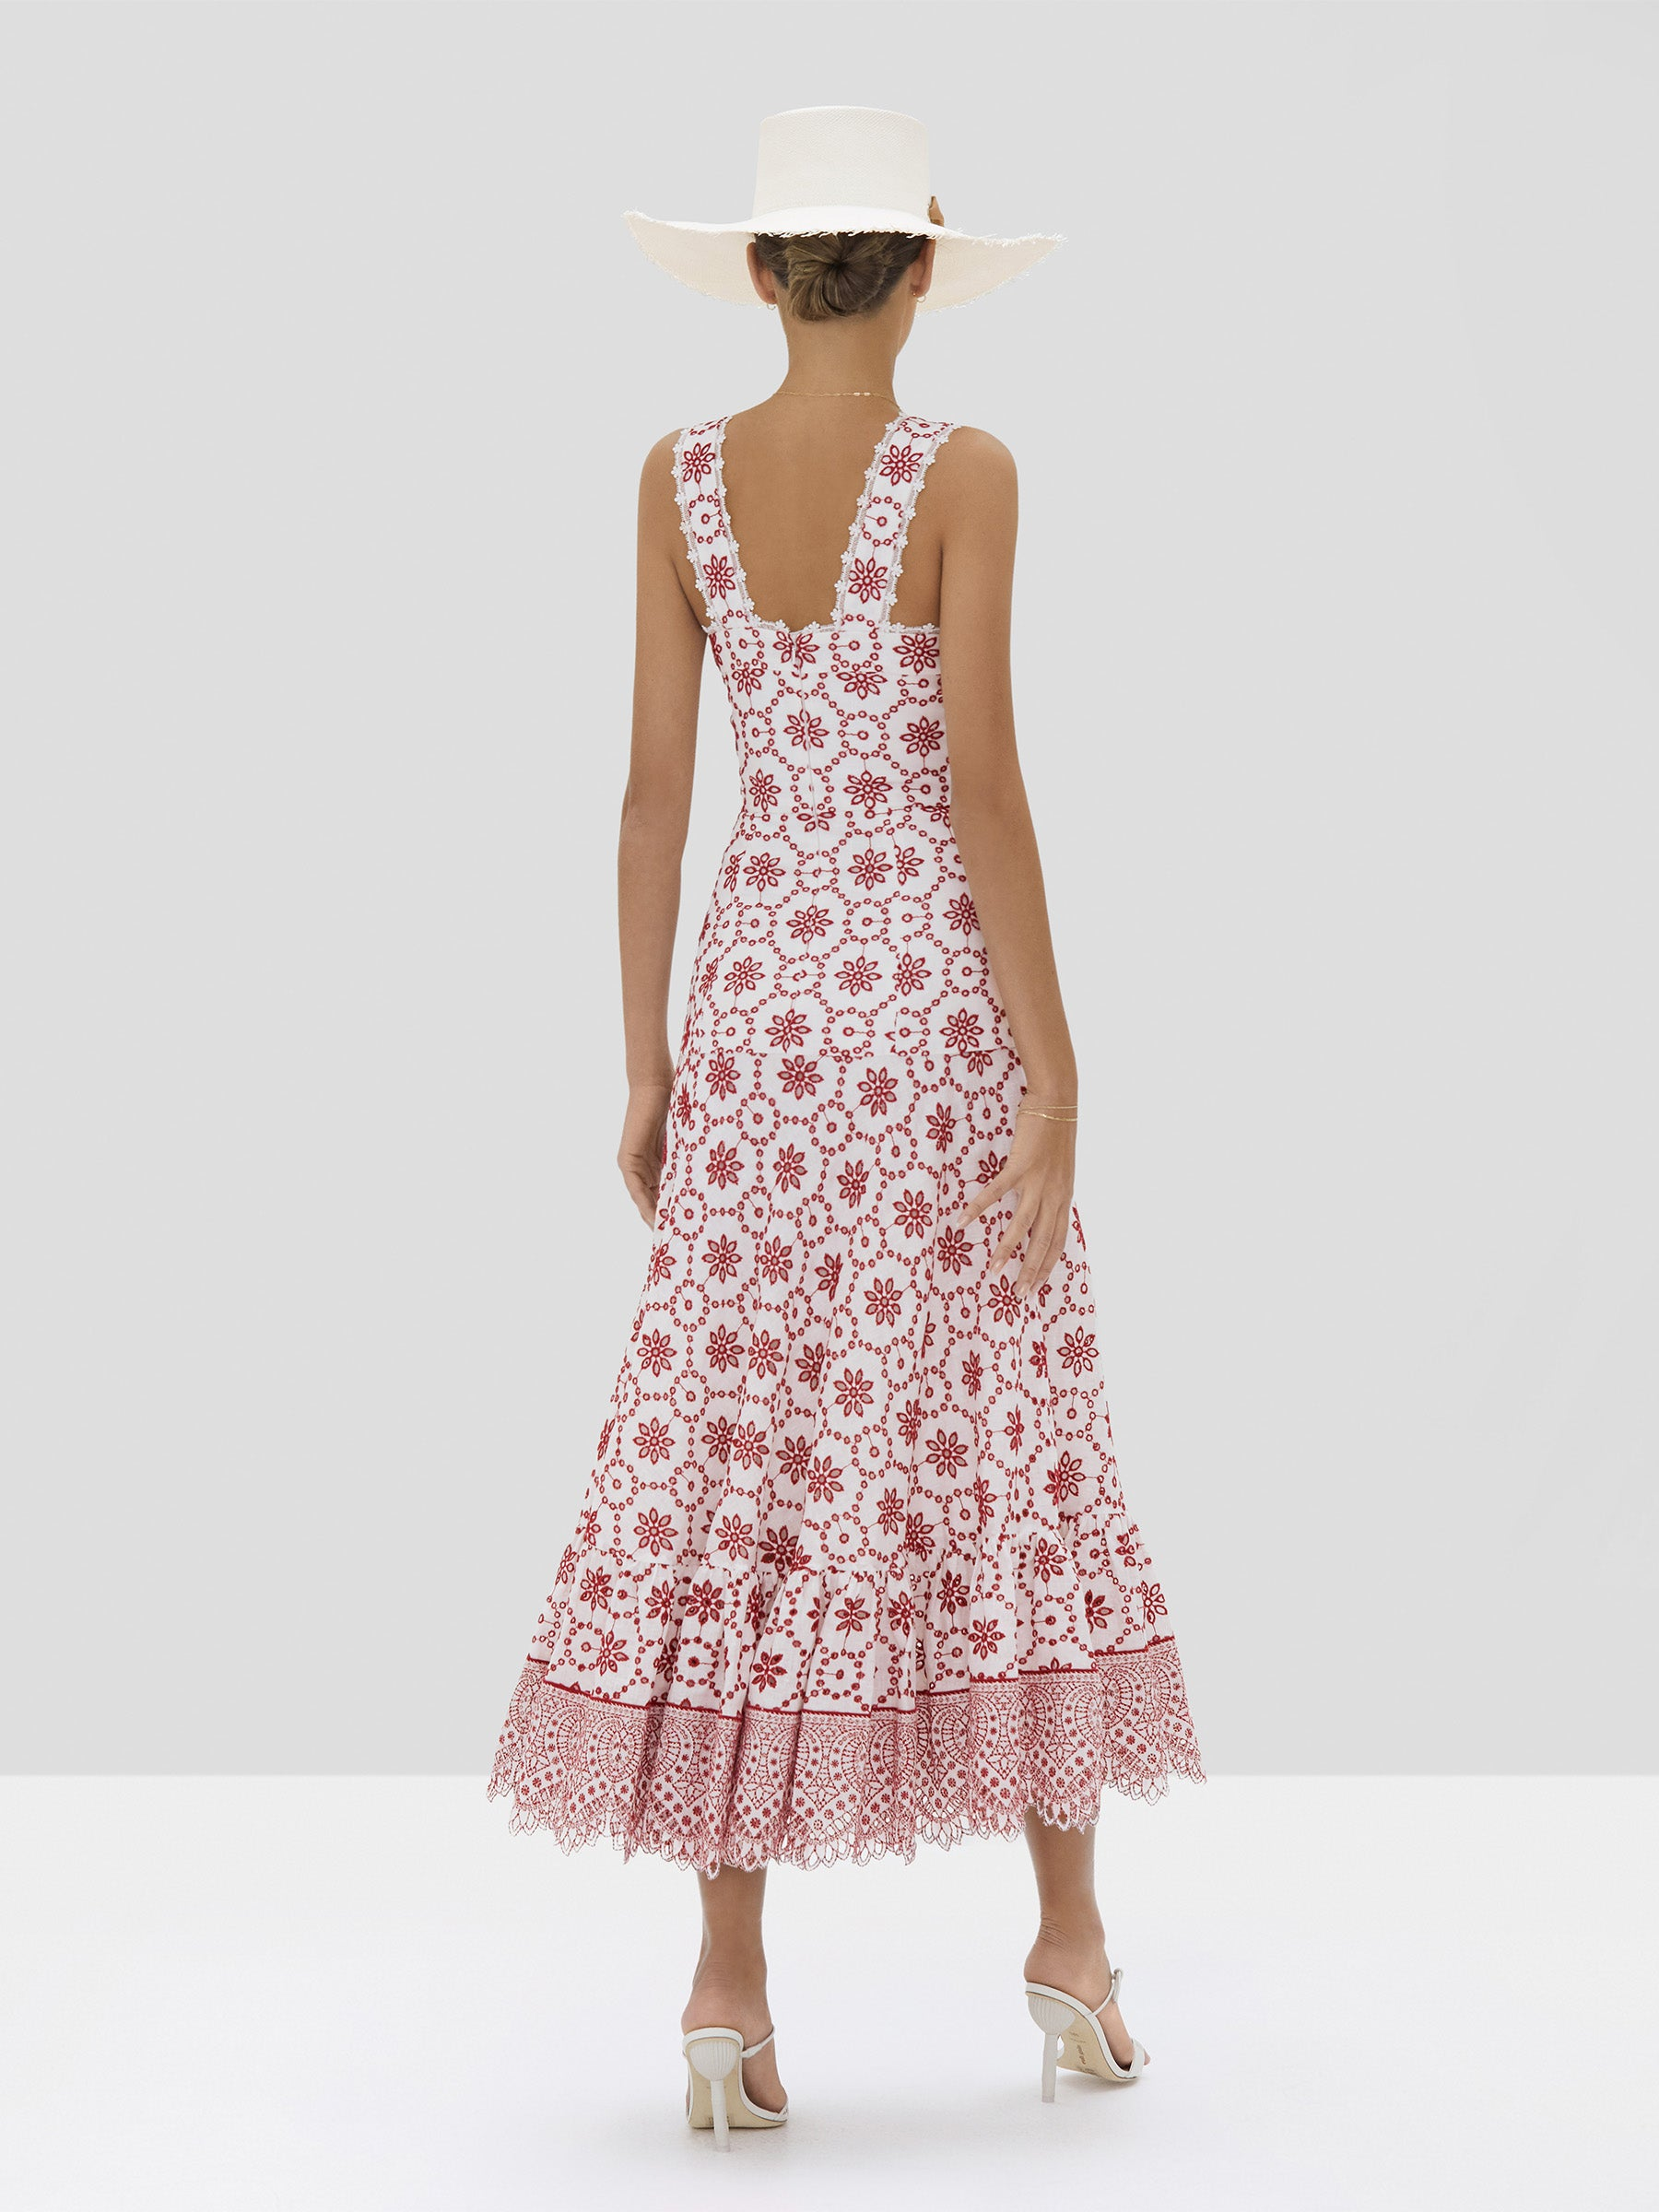 Alexis Eugenia Dress in Berry Eyelet Embroidery from Spring Summer 2020 - Rear View